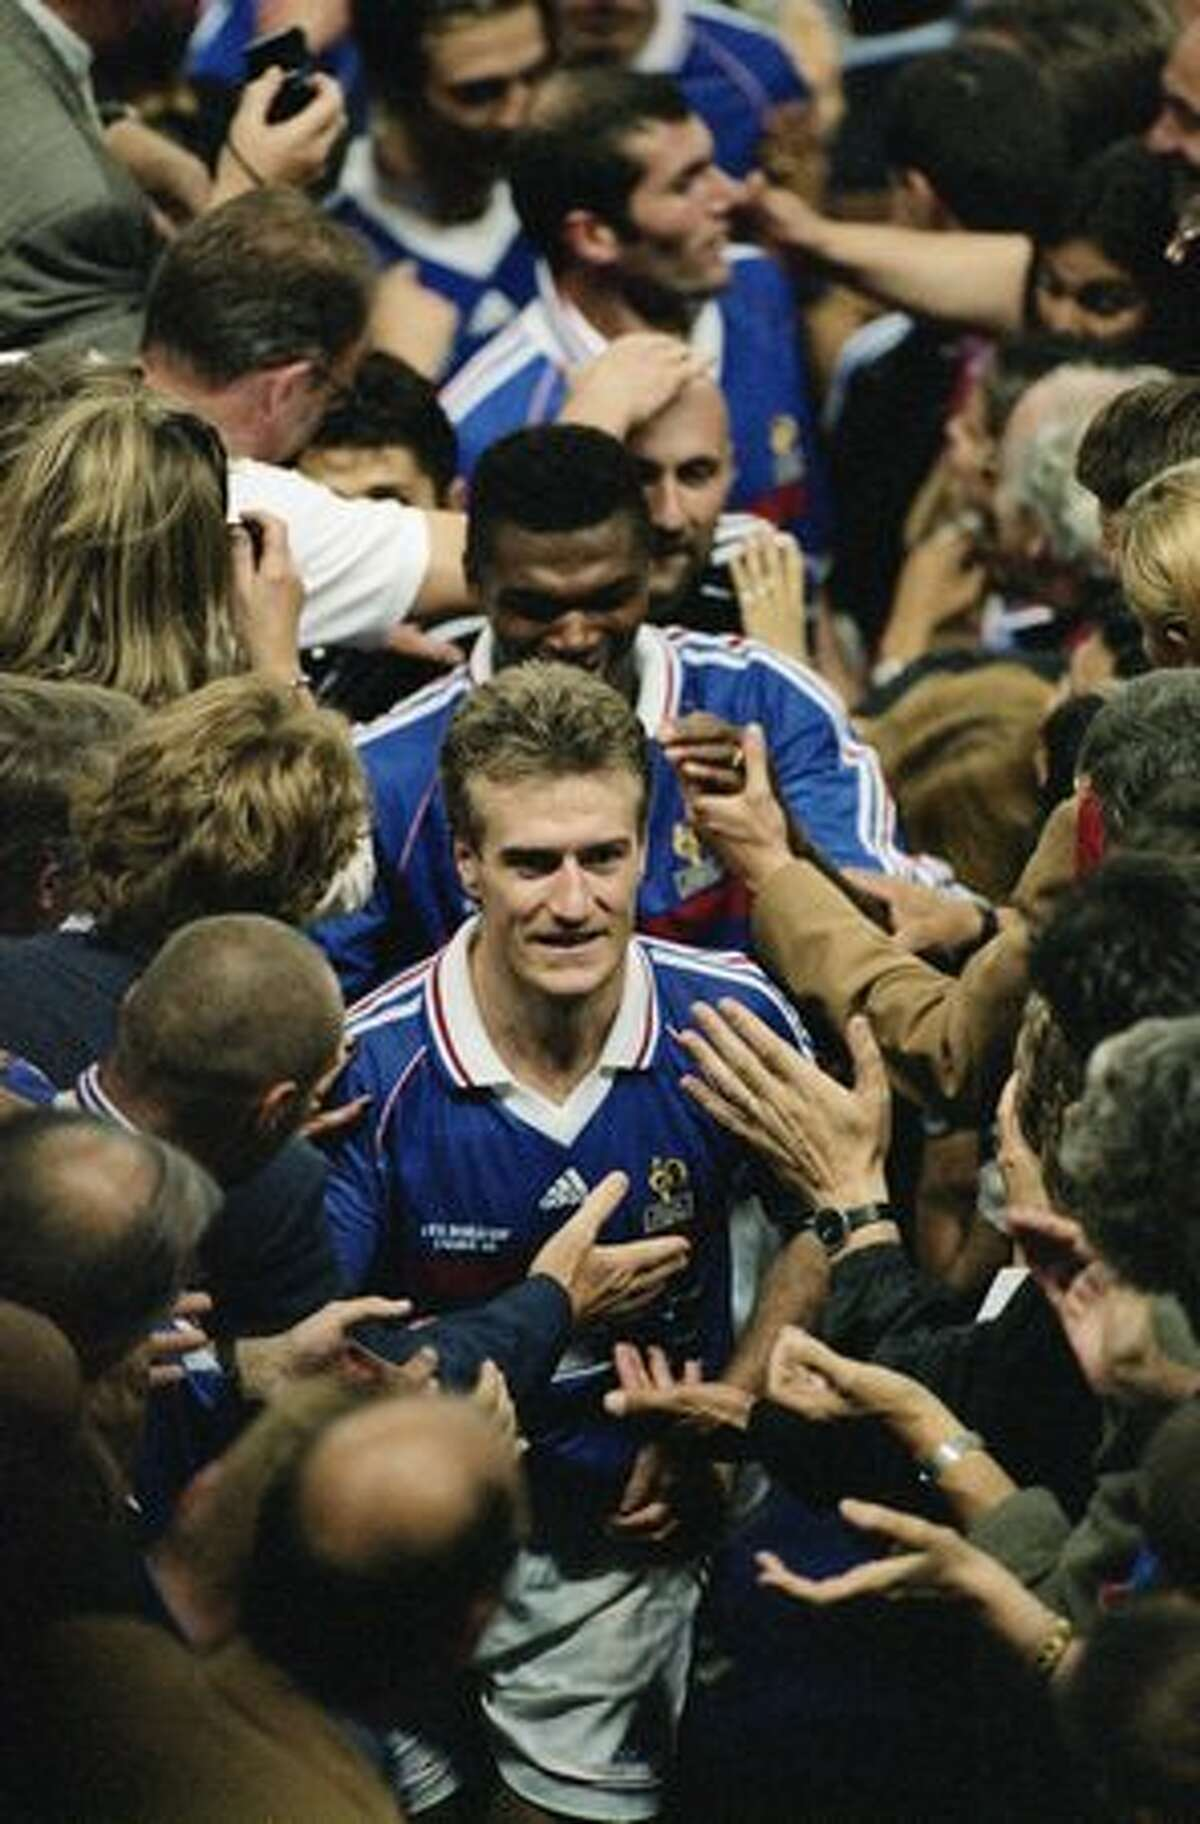 1998: France captain Didier Deschamps leads his team up to the presentation box after victory in the World Cup final against Brazil.